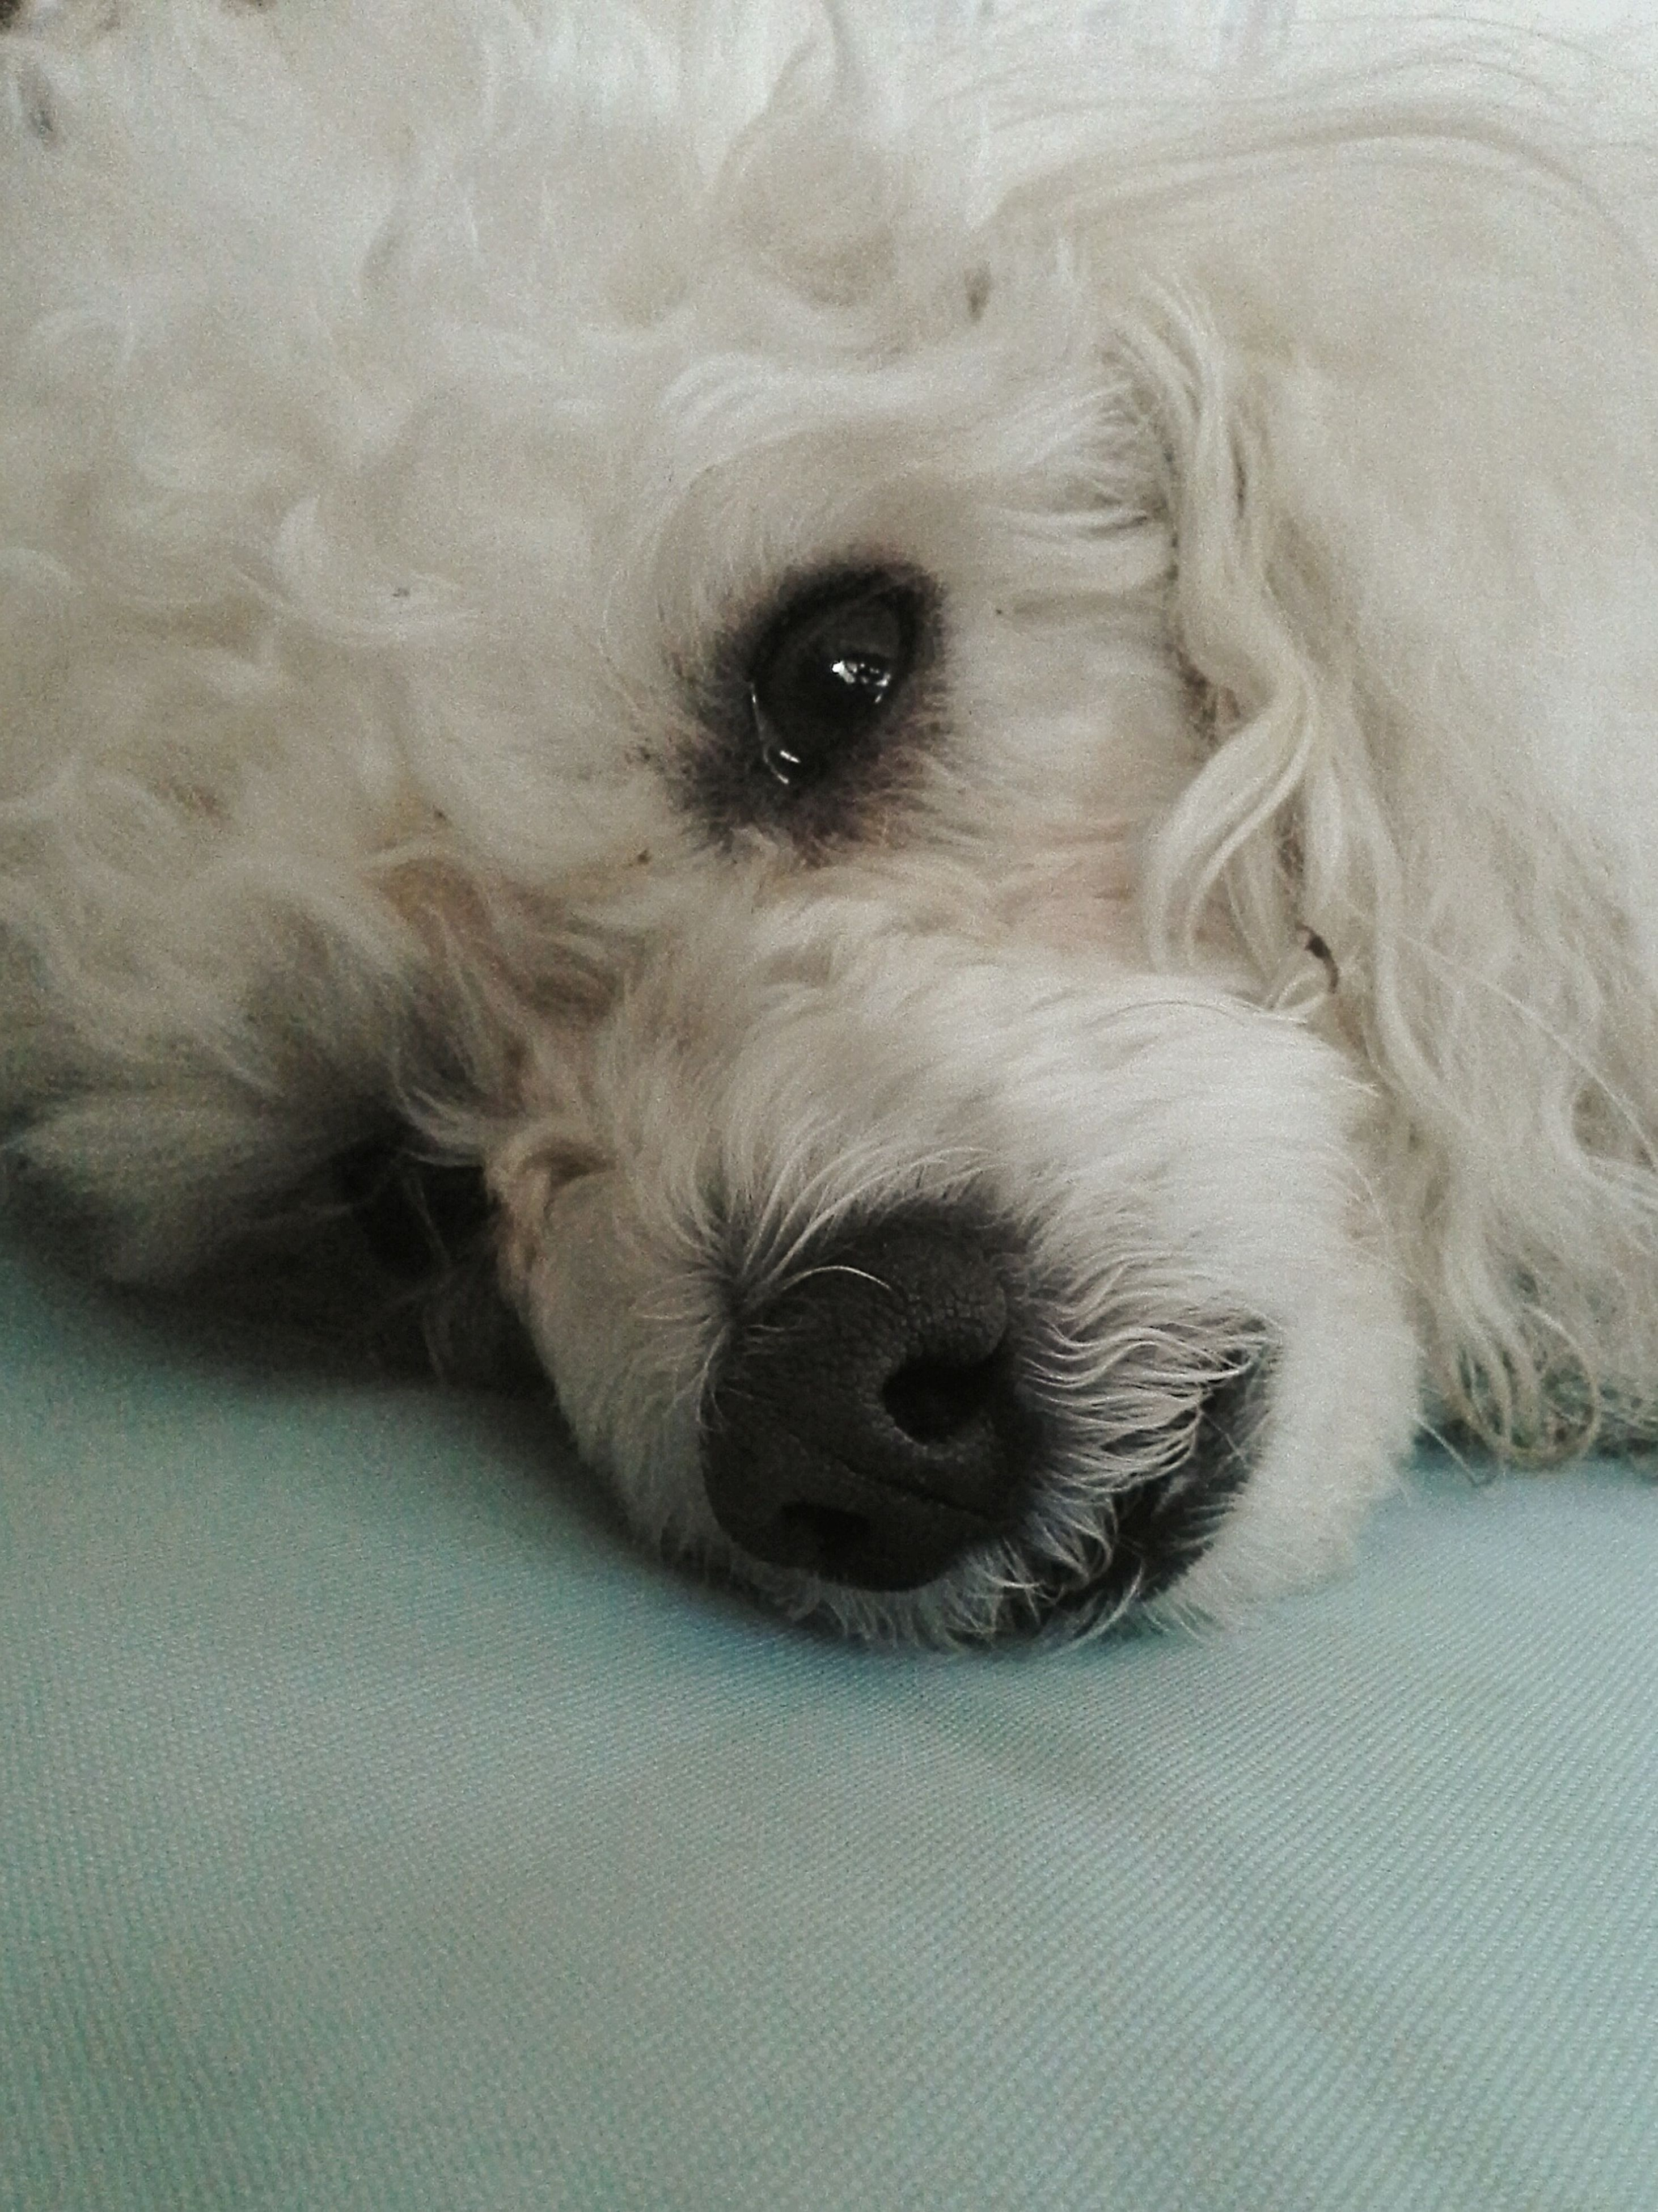 dog, one animal, pets, animal themes, domestic animals, indoors, mammal, relaxation, resting, animal head, lying down, close-up, animal body part, portrait, animal hair, bed, white color, looking at camera, no people, high angle view